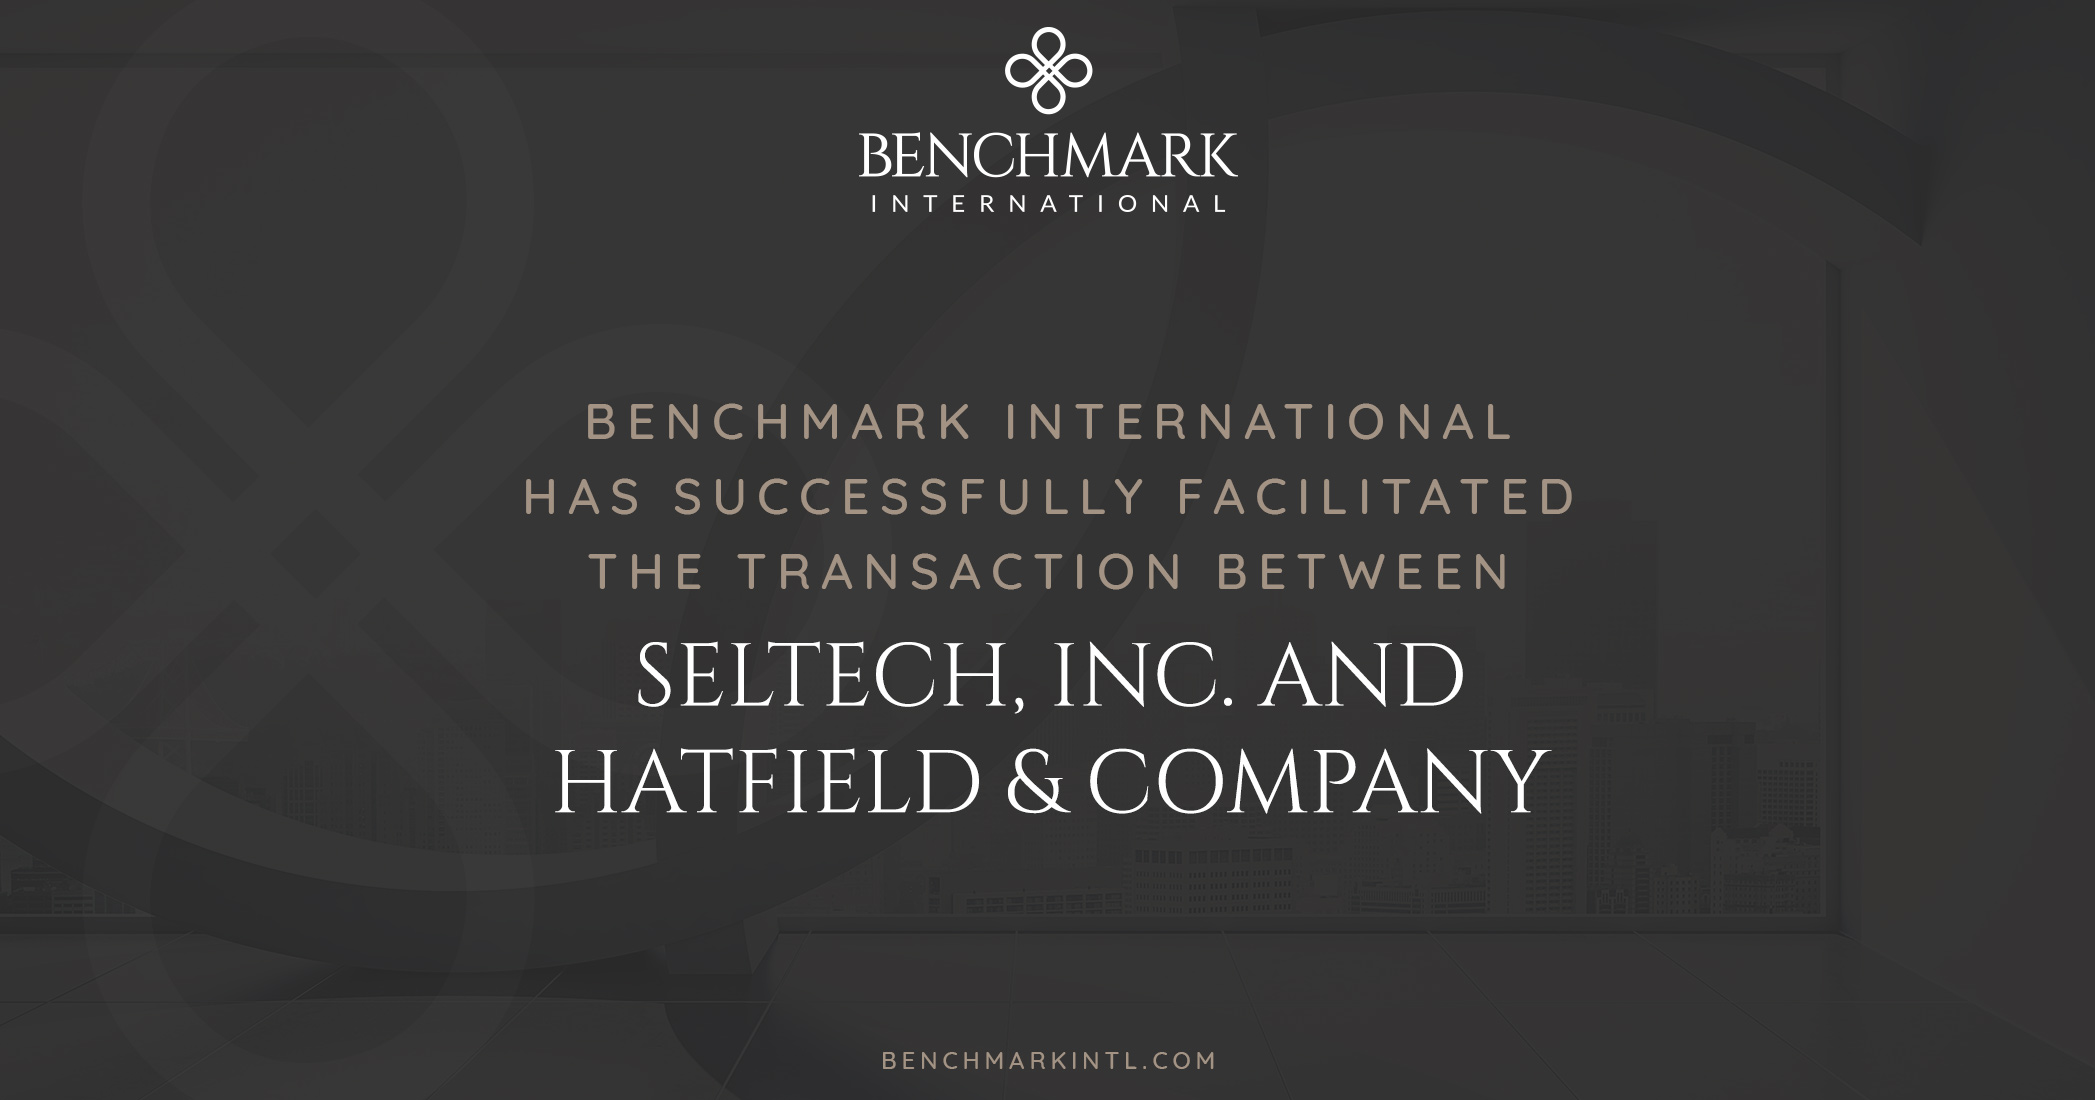 Benchmark International Successfully Facilitated the Transaction between Seltech, Inc. and Hatfield & Company